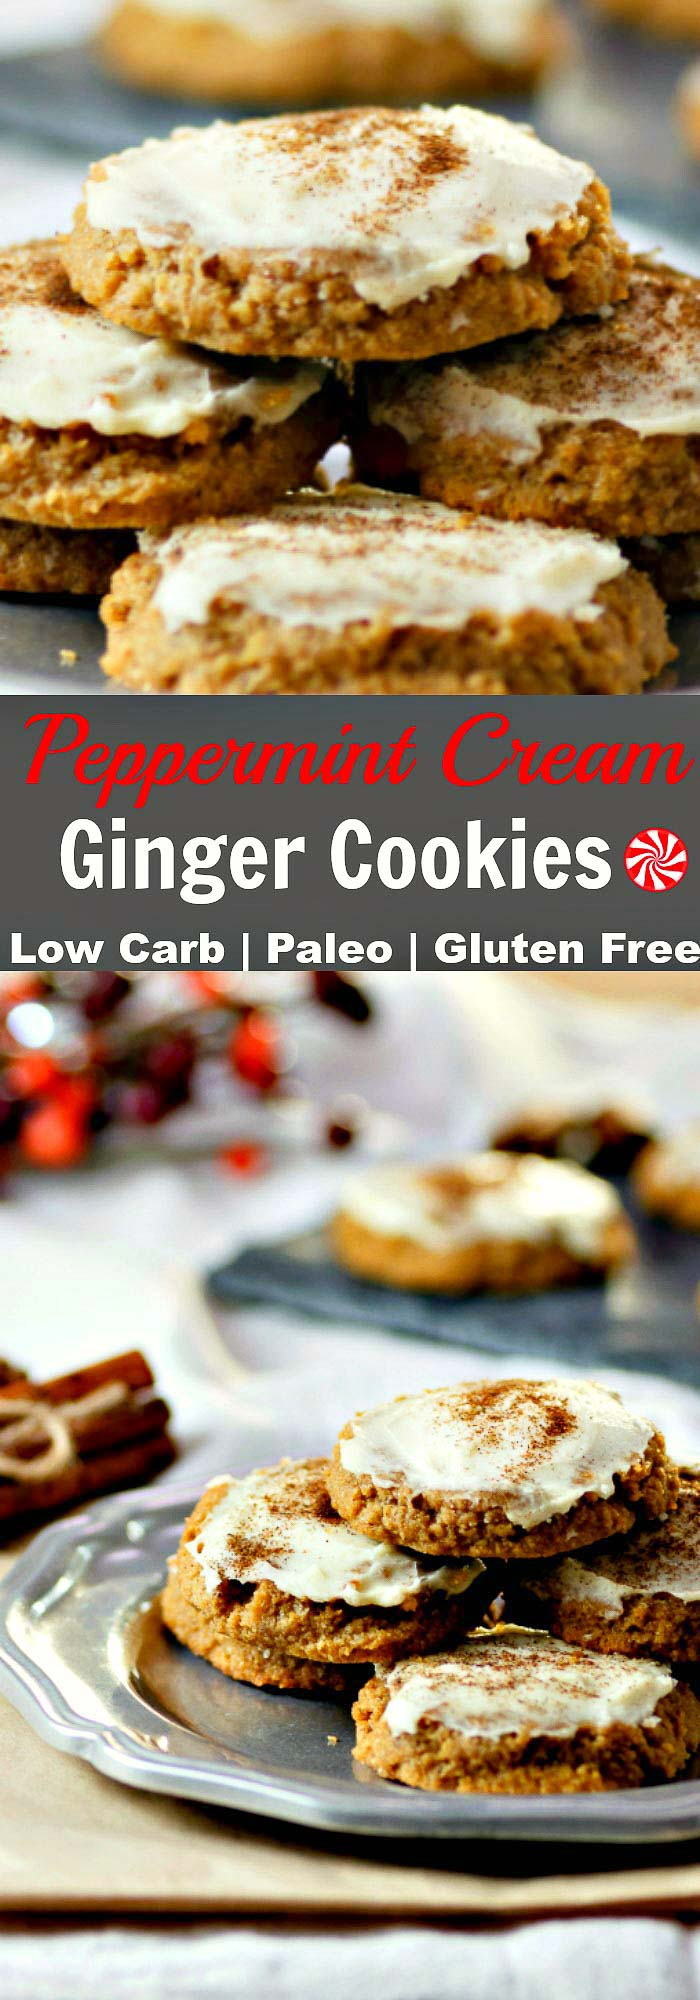 Peppermint Cream Ginger Cookies Low Carb & Paleo